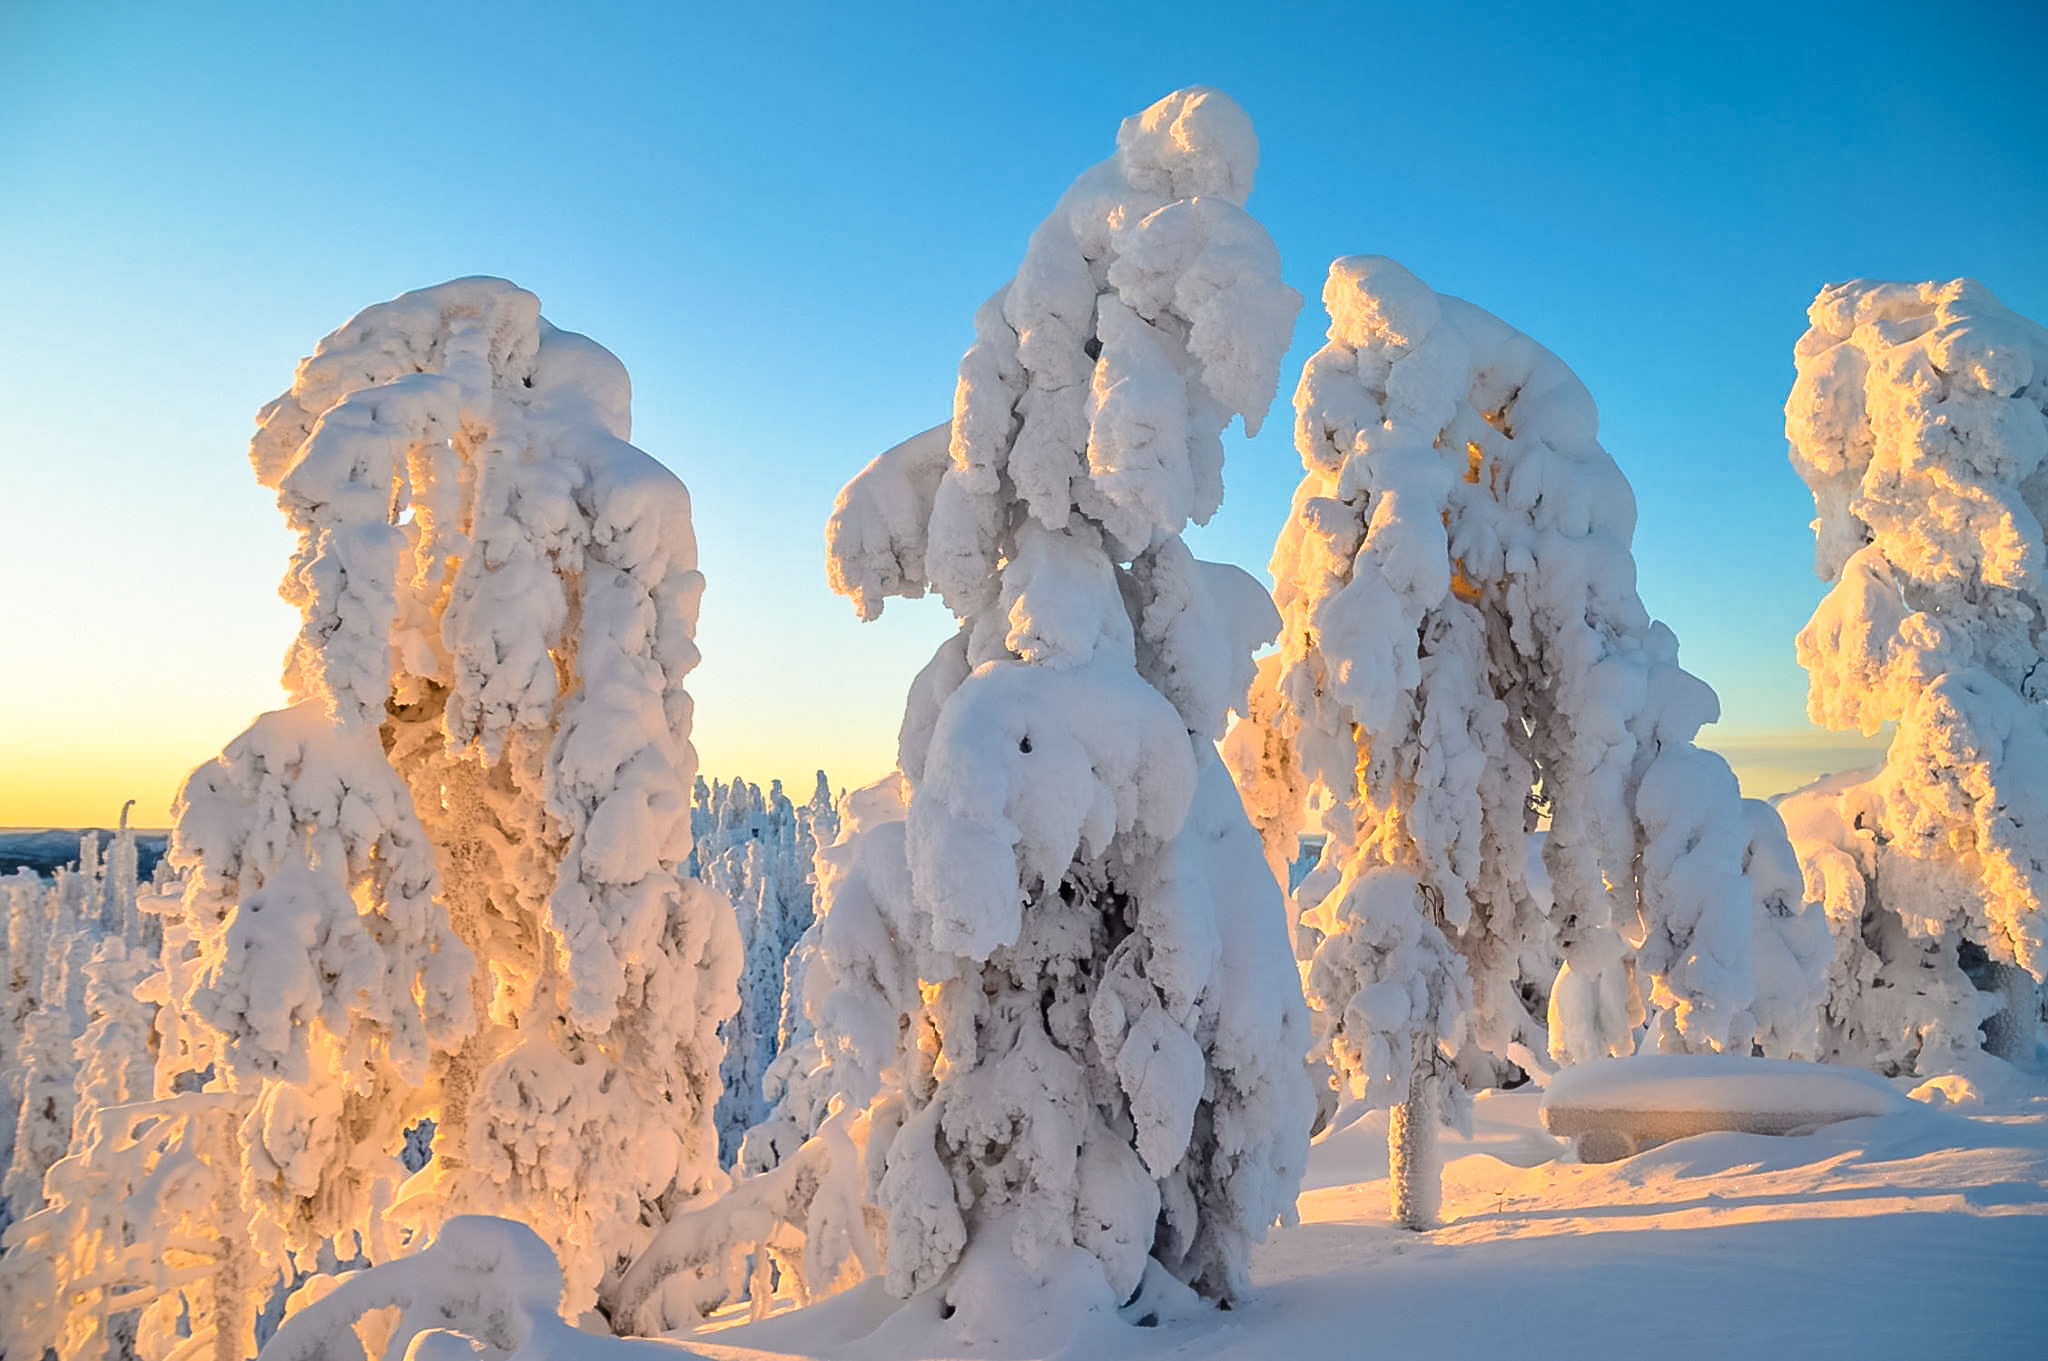 Kuusamo Winter Wonderland